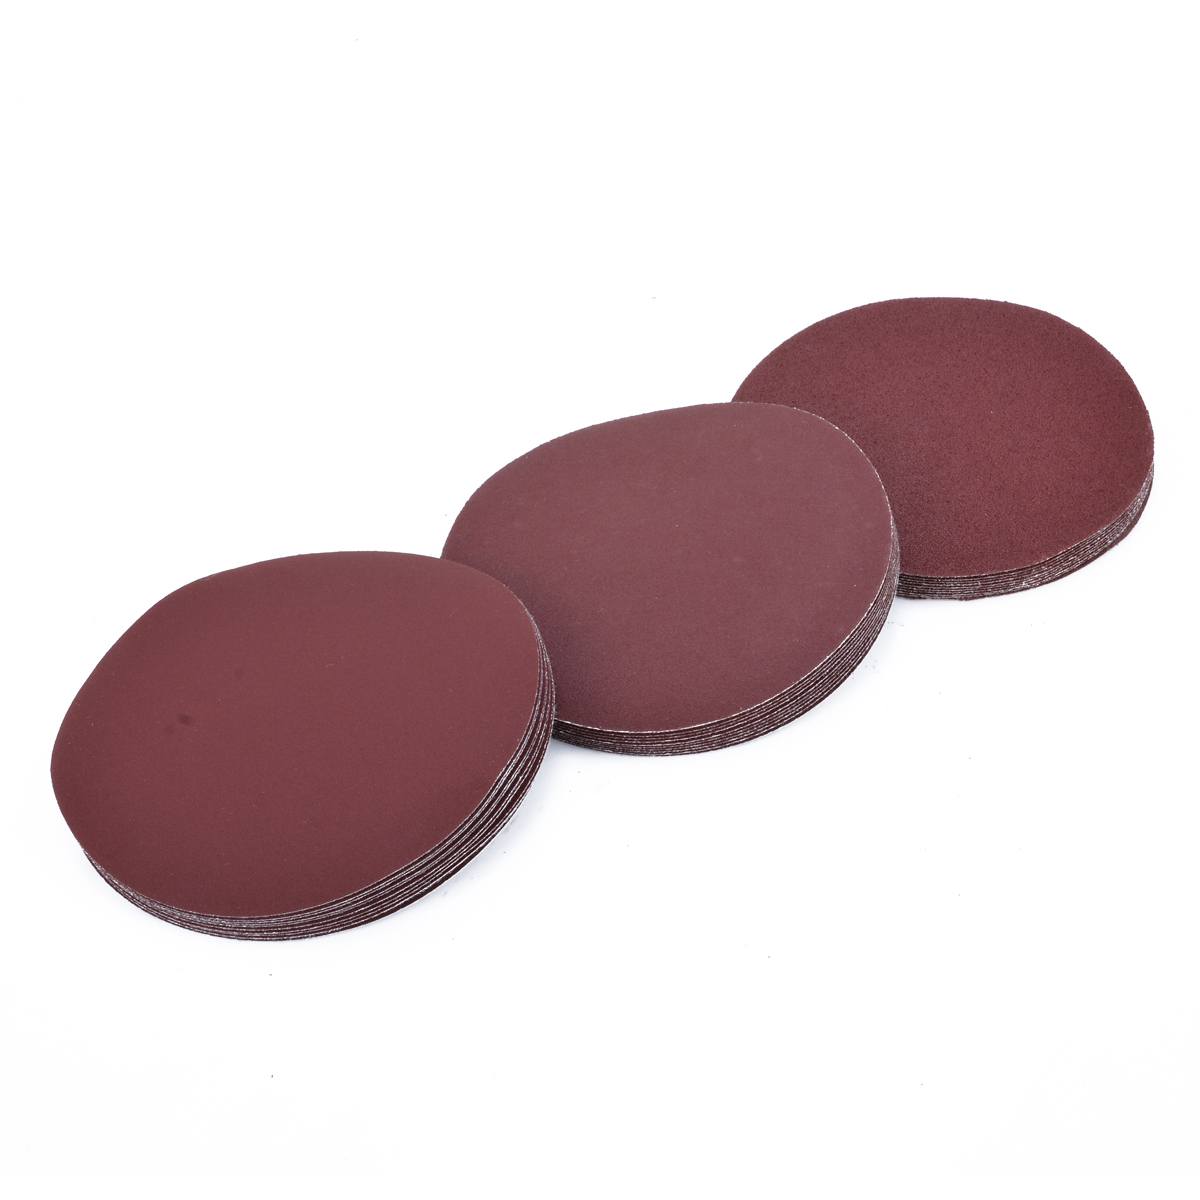 "10PCS Autobody 5/"" Stick on psa Sanding Discs 320 Grit"